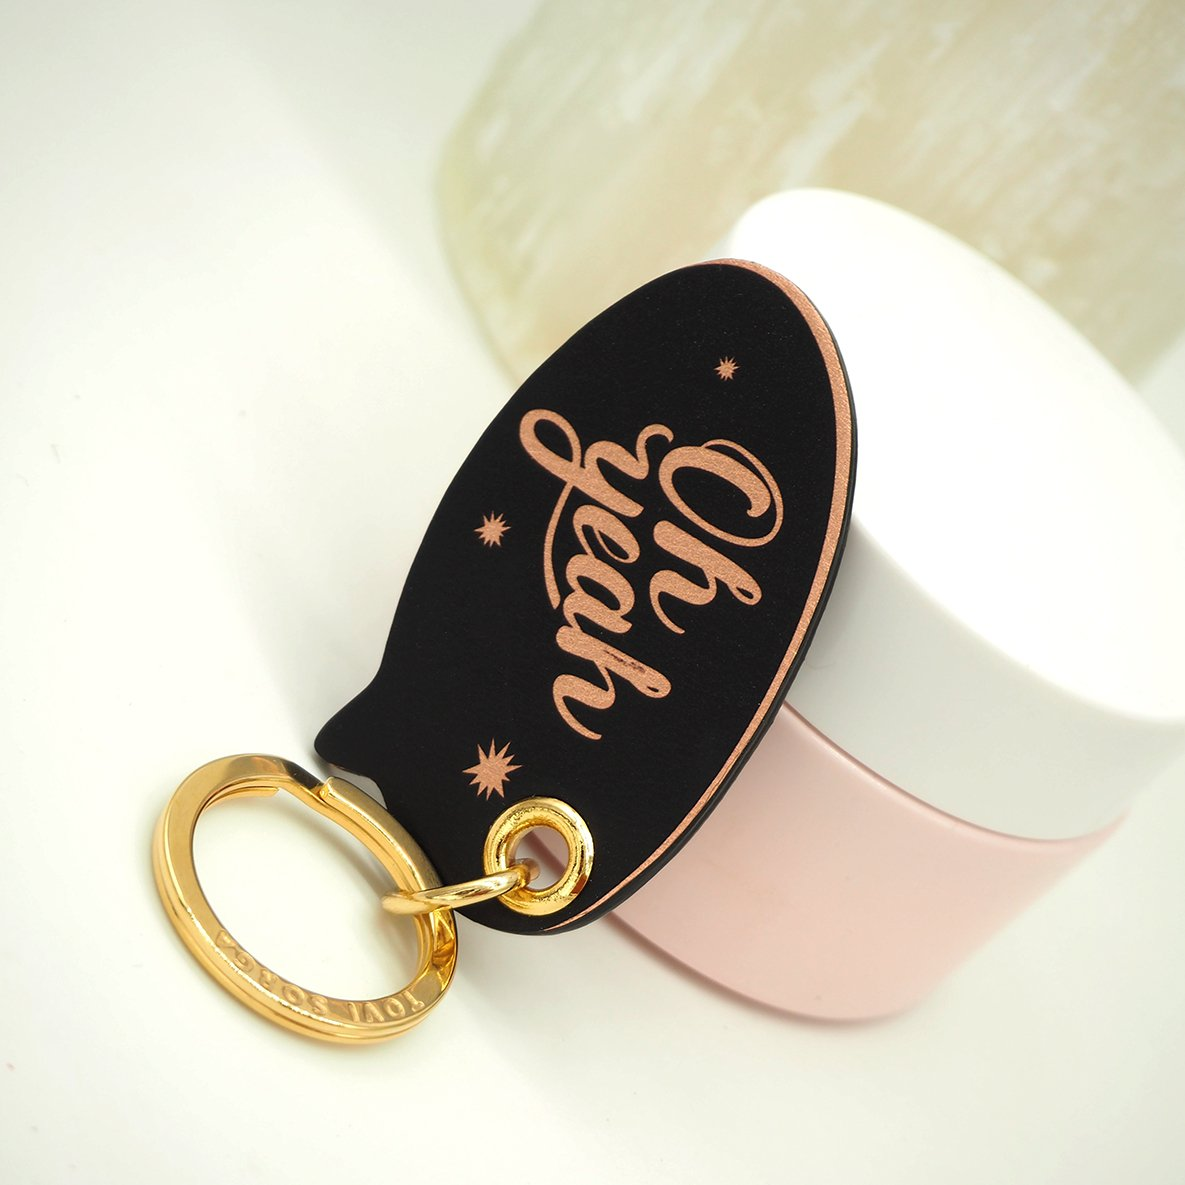 Leather Contactless Payment Key Charm - Oh Yeah! Tovi Sorga Rose Gold